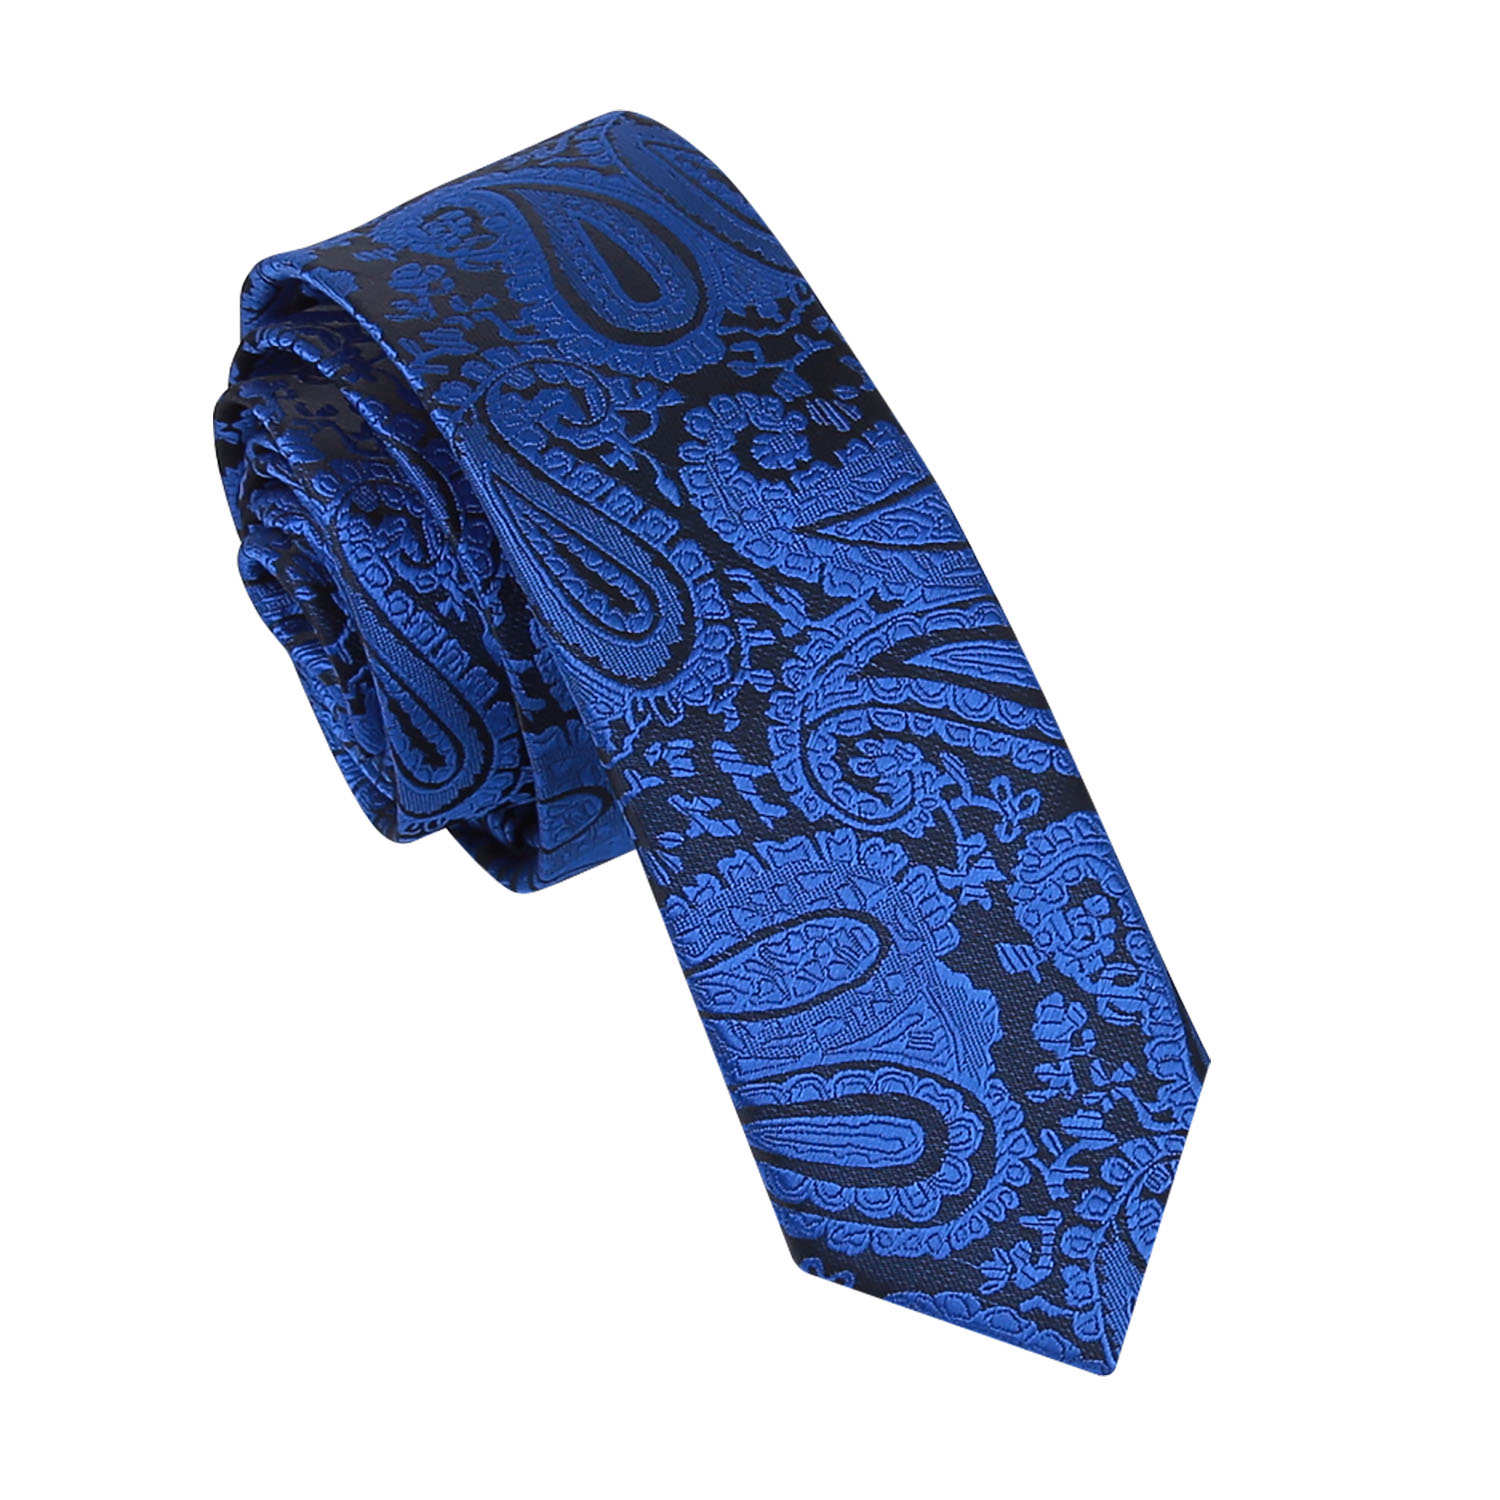 Enjoy free shipping and easy returns every day at Kohl's. Find great deals on Mens Skinny Tie Ties at Kohl's today!